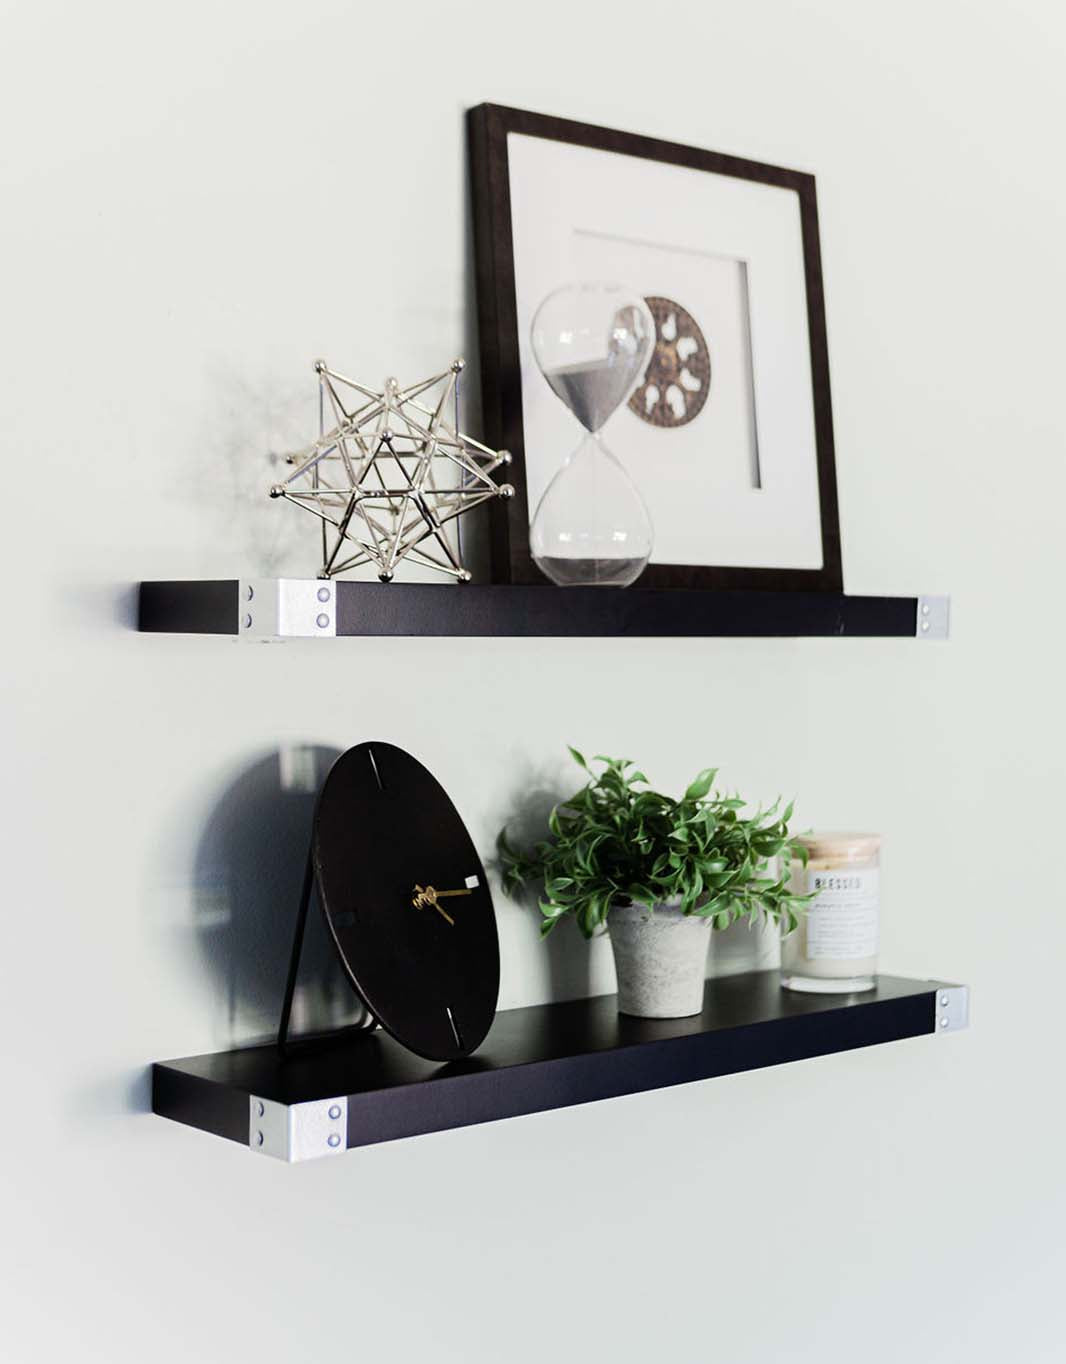 The Raja - Black Floating Shelves with Silver Iron Corners, All Wood Wall Shelves, 3 Coat Lacquer Finish - Set of 2 - Bedroom, Bathroom, Kitchen - 24 x 6 x 1.5 in)